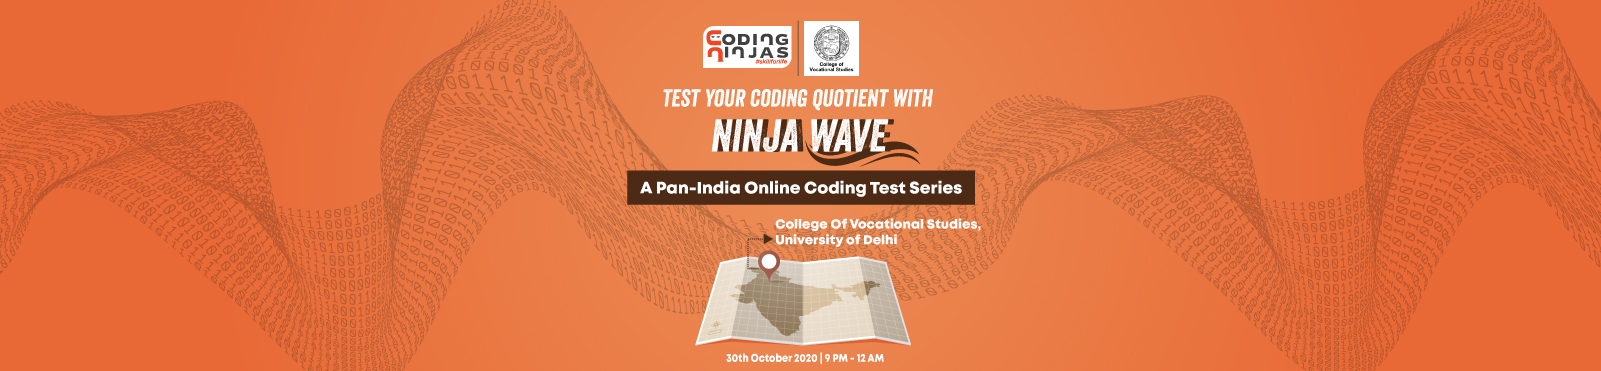 Ninja Wave at College of Vocational Studies, University of Delhi